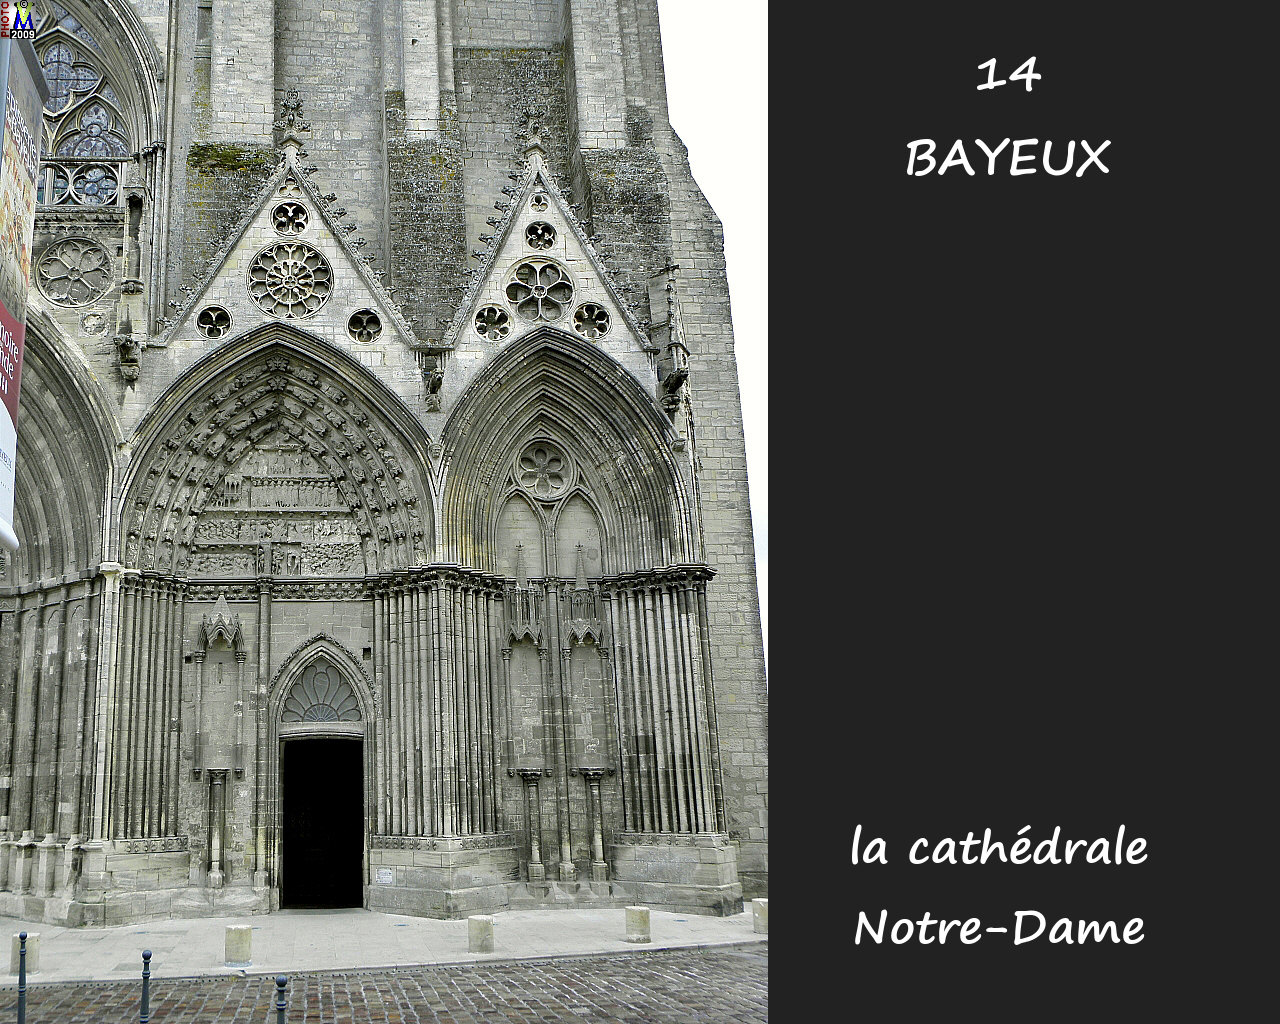 14BAYEUX_cathedrale_142.jpg